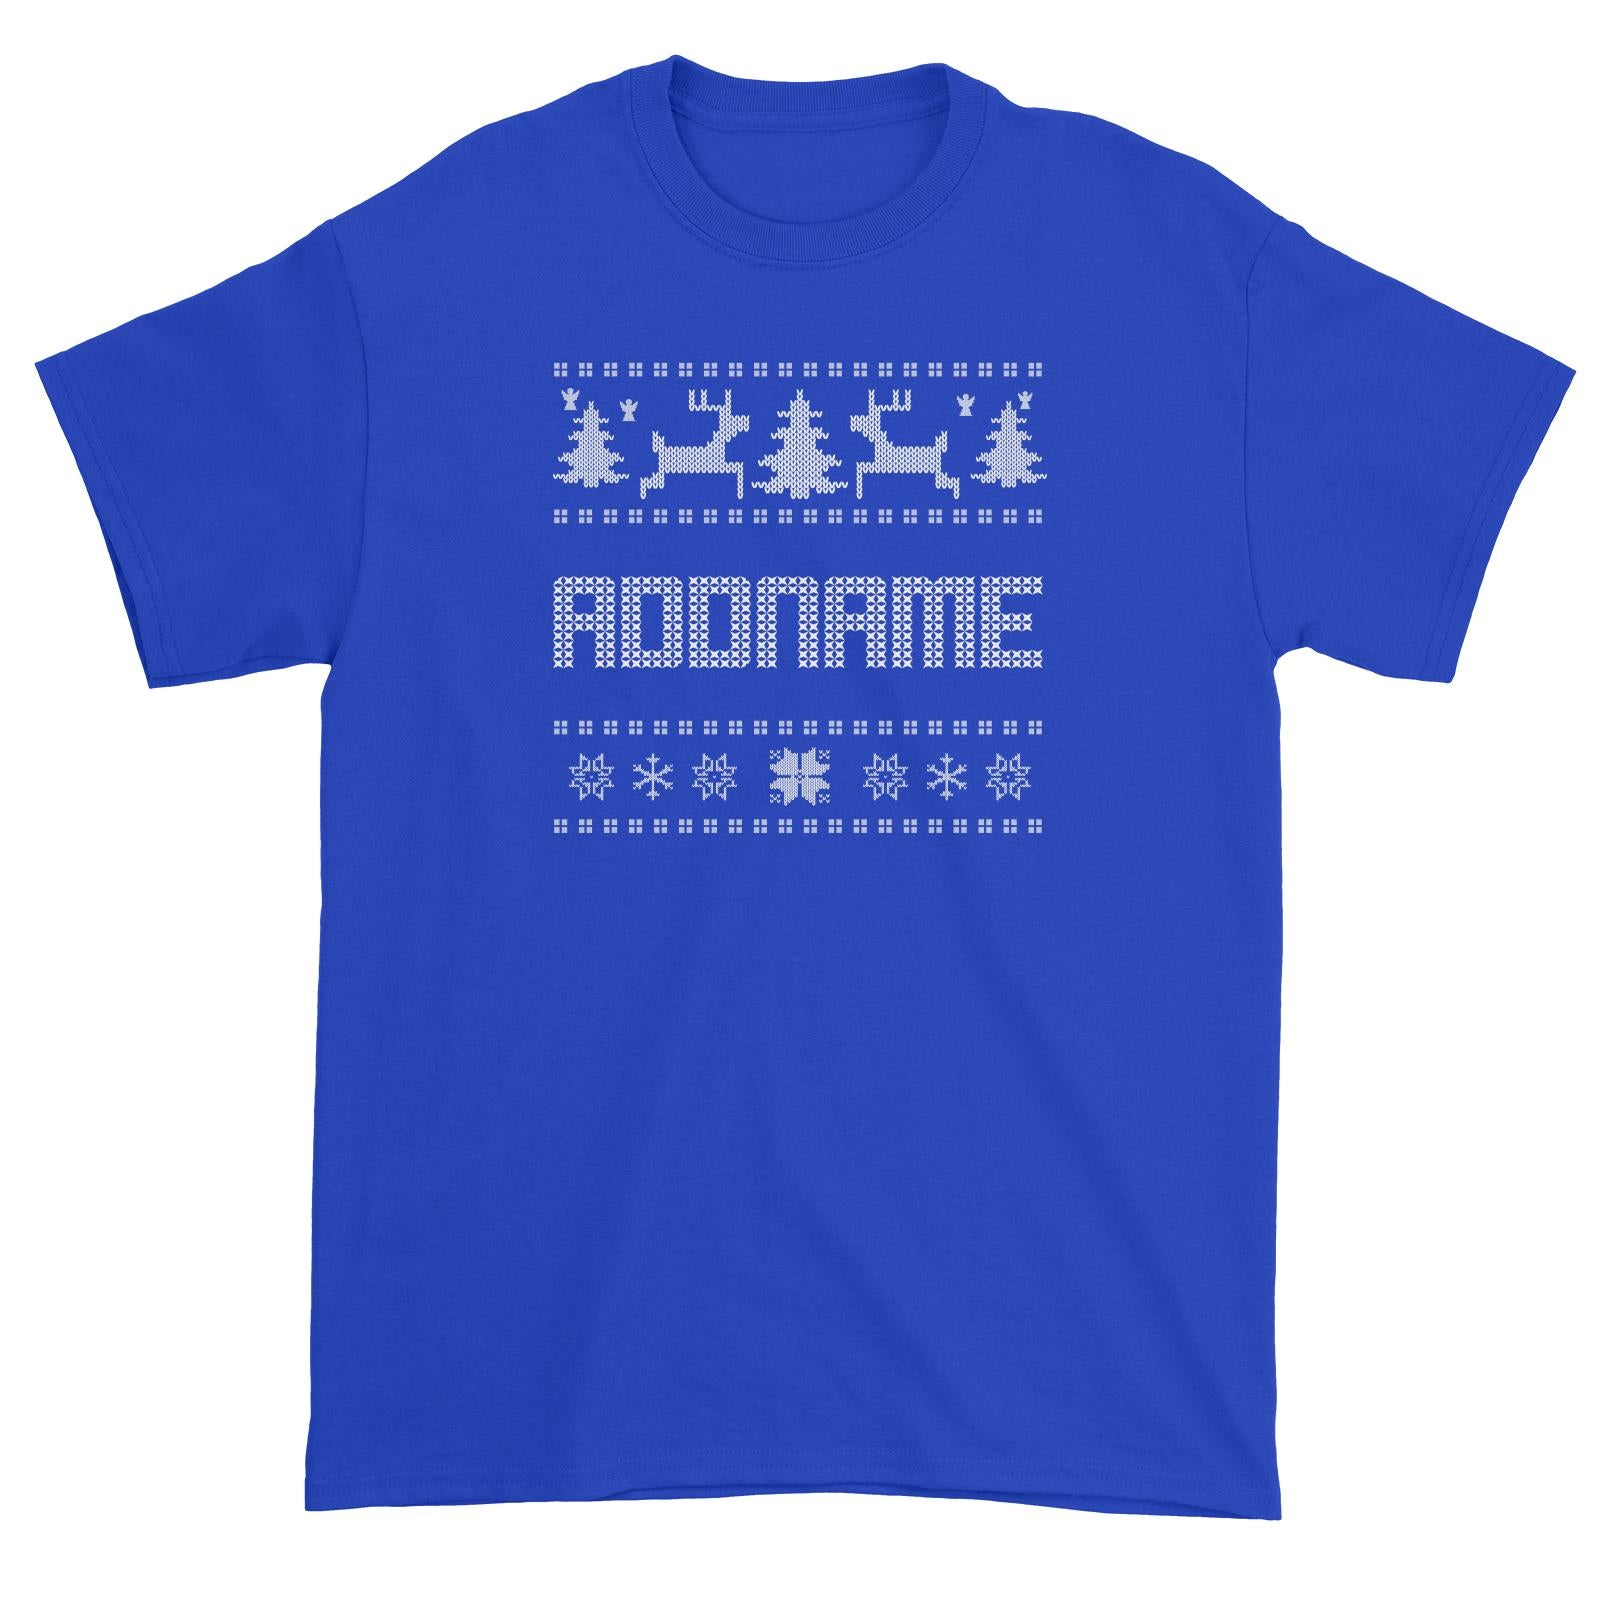 Christmas Sweater Addname Unisex T-Shirt  Matching Family Personalizable Designs